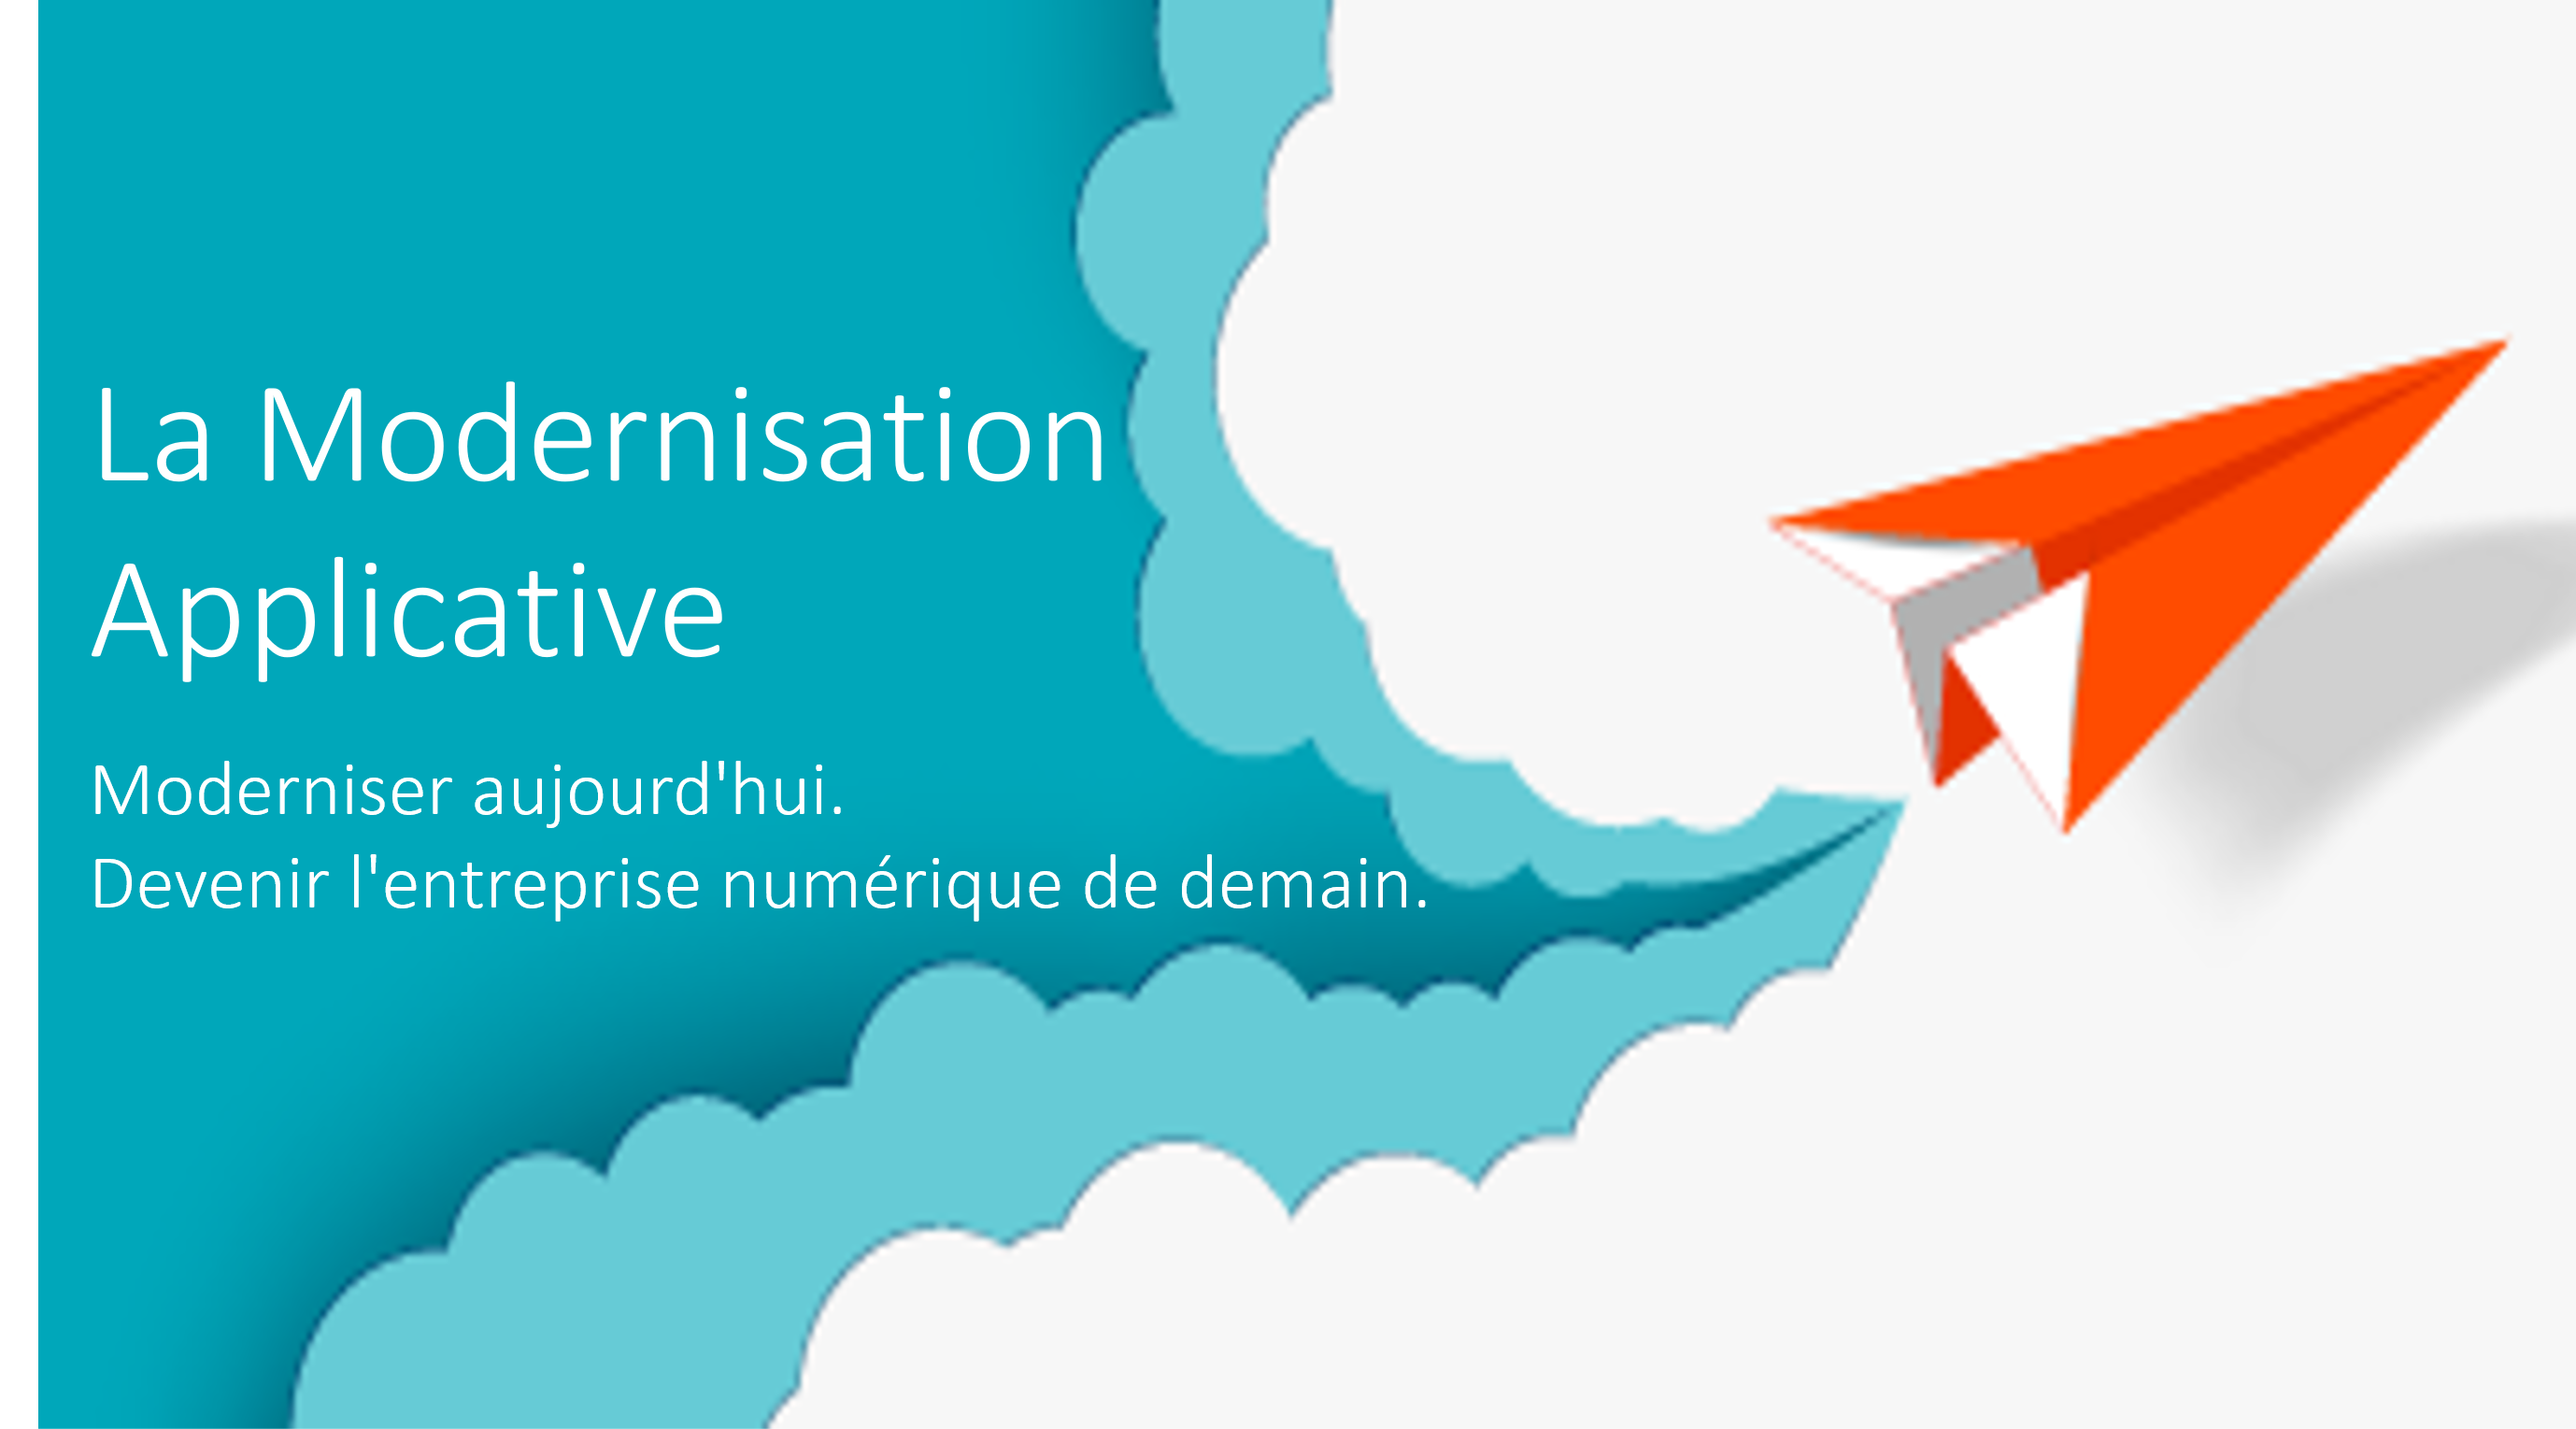 rm01-la-modernisation-applicative_2995741